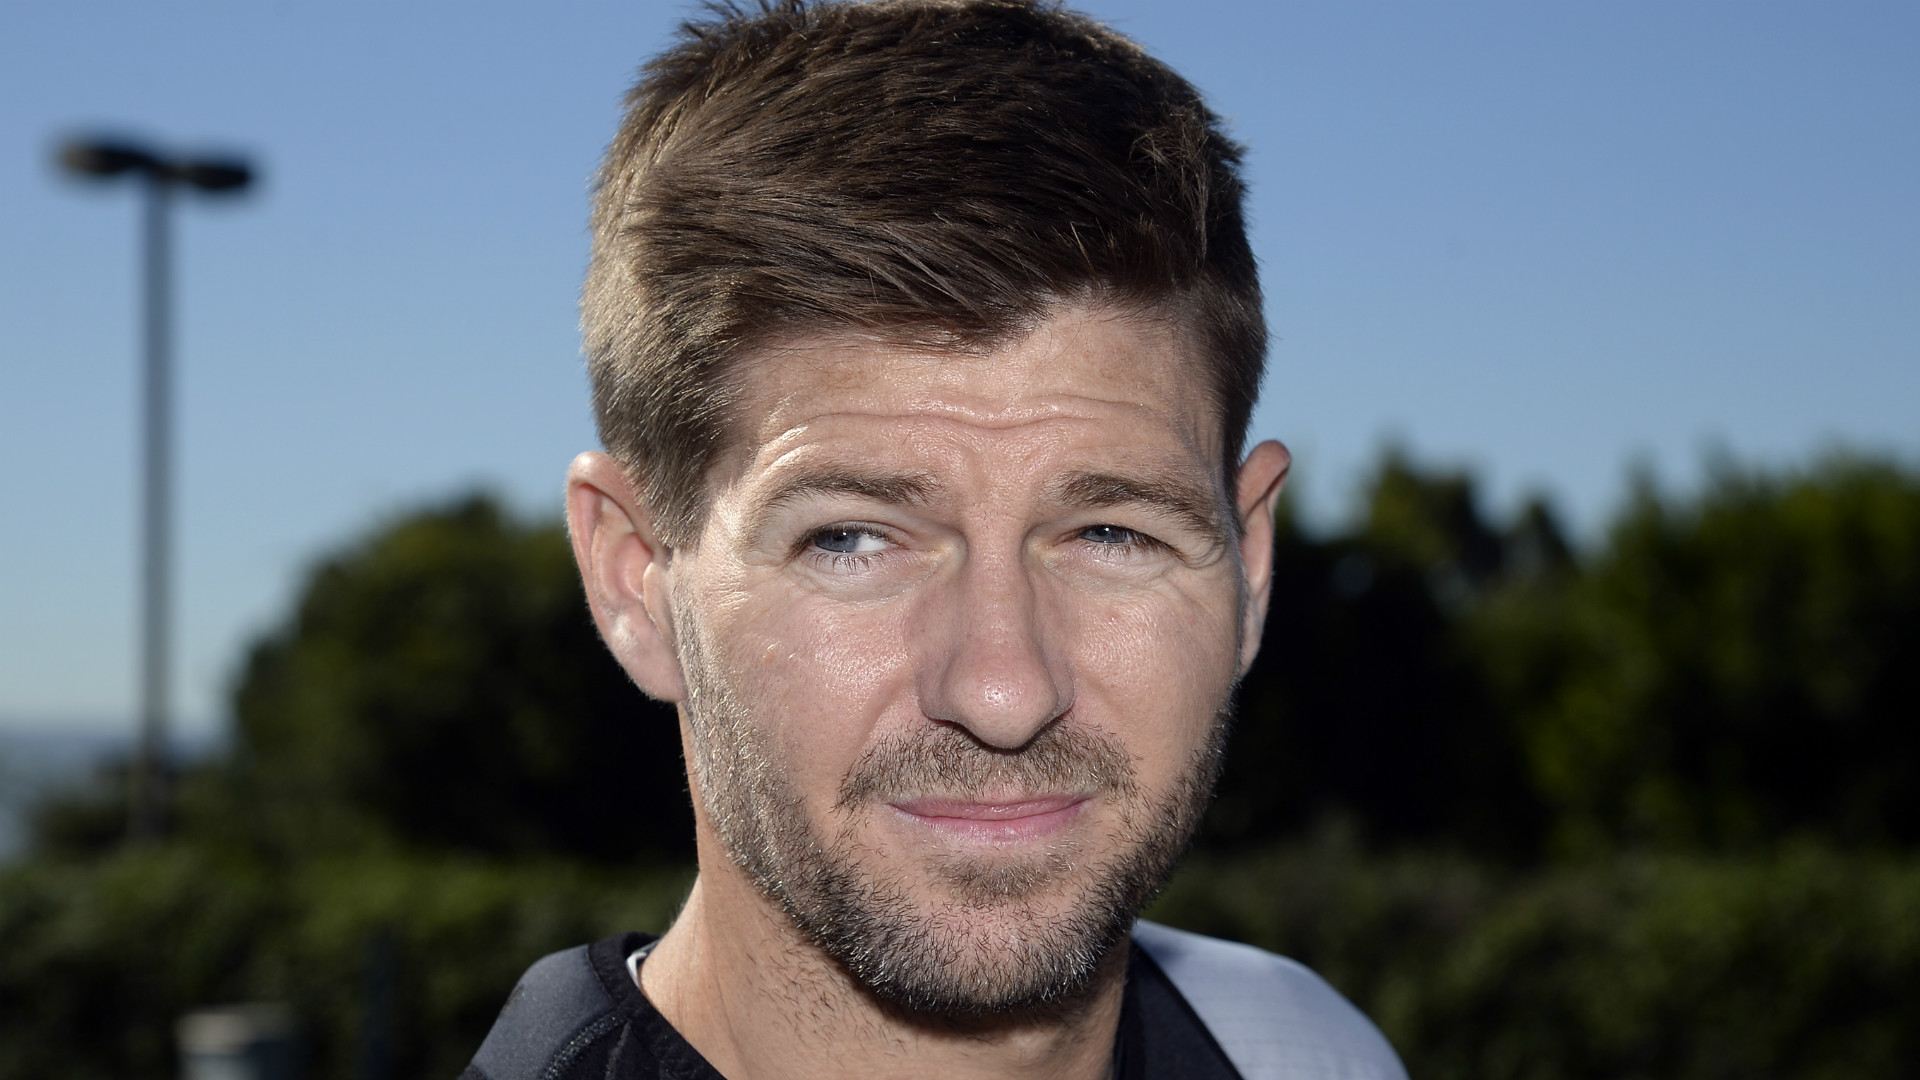 Steven Gerrard in talks with MK Dons over vacant managerial role